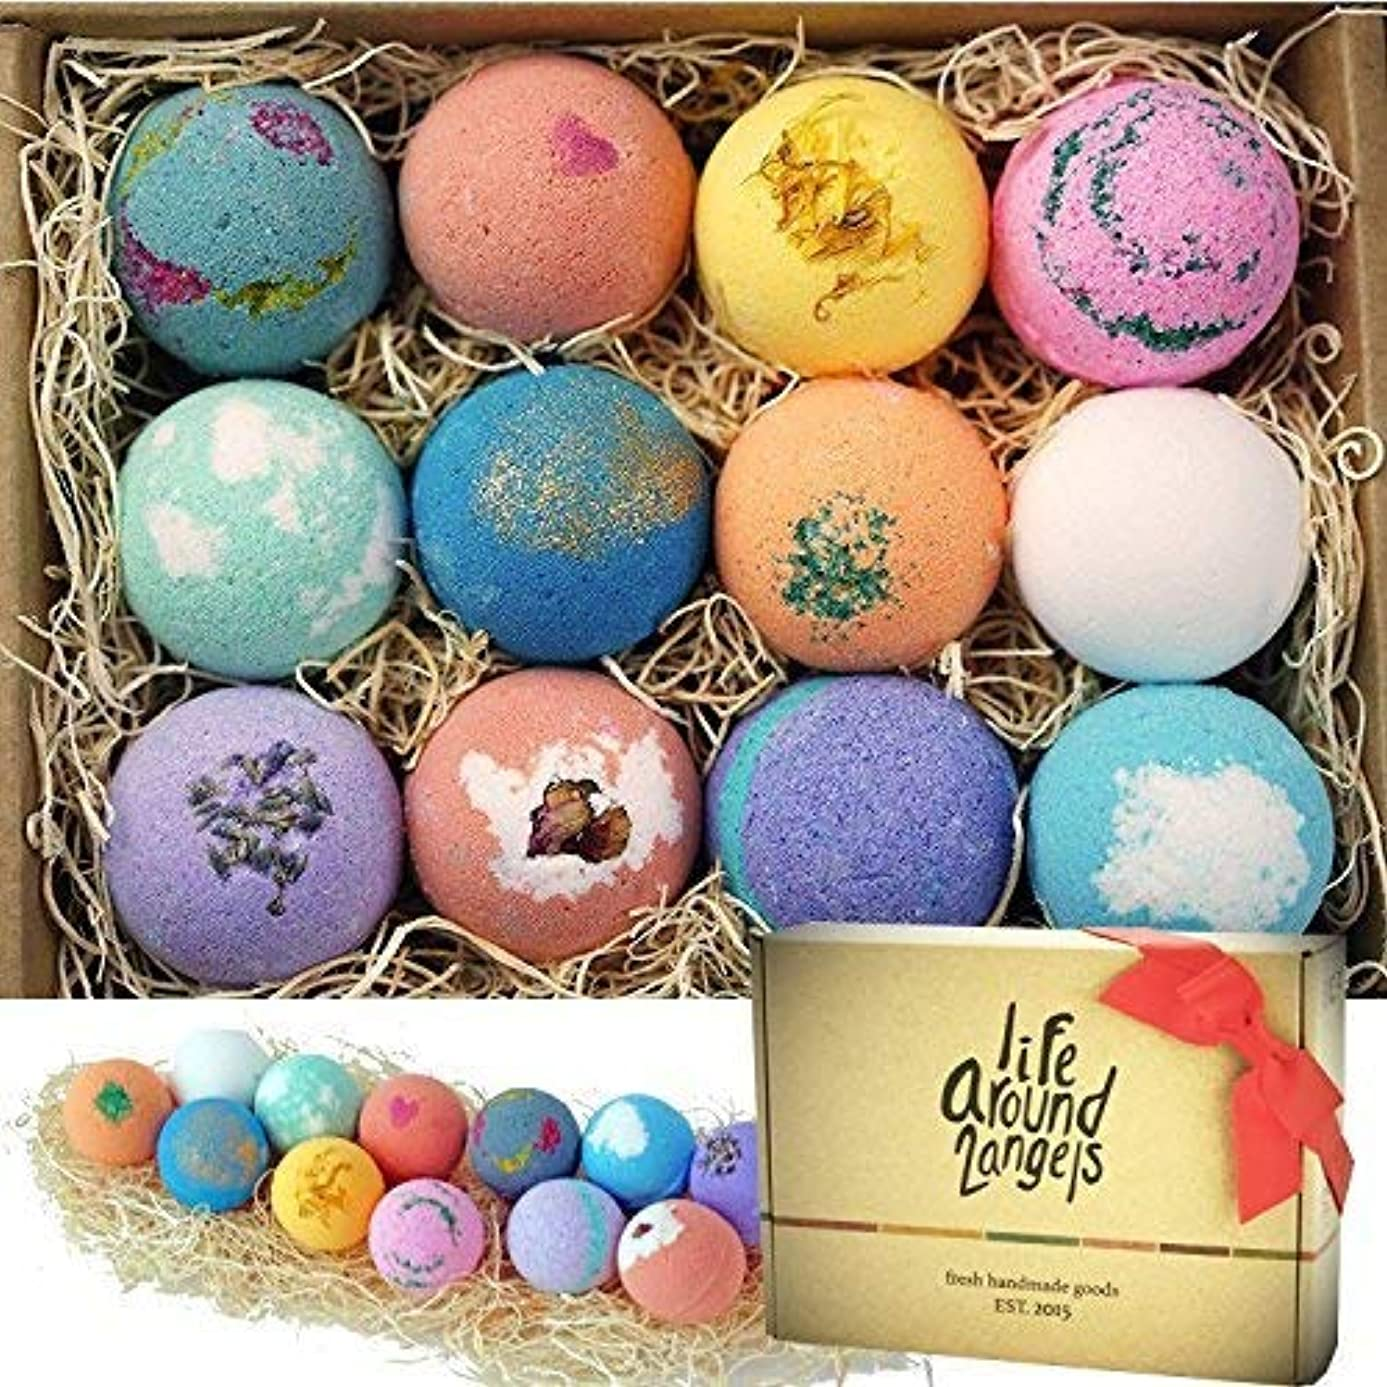 動く悲しい忌み嫌うLifeAround2Angels バスボム 入浴剤 ギフトセット12個入り bath bombs USA made Fizzies, Shea & Coco Butter Dry Skin Moisturize, Perfect...